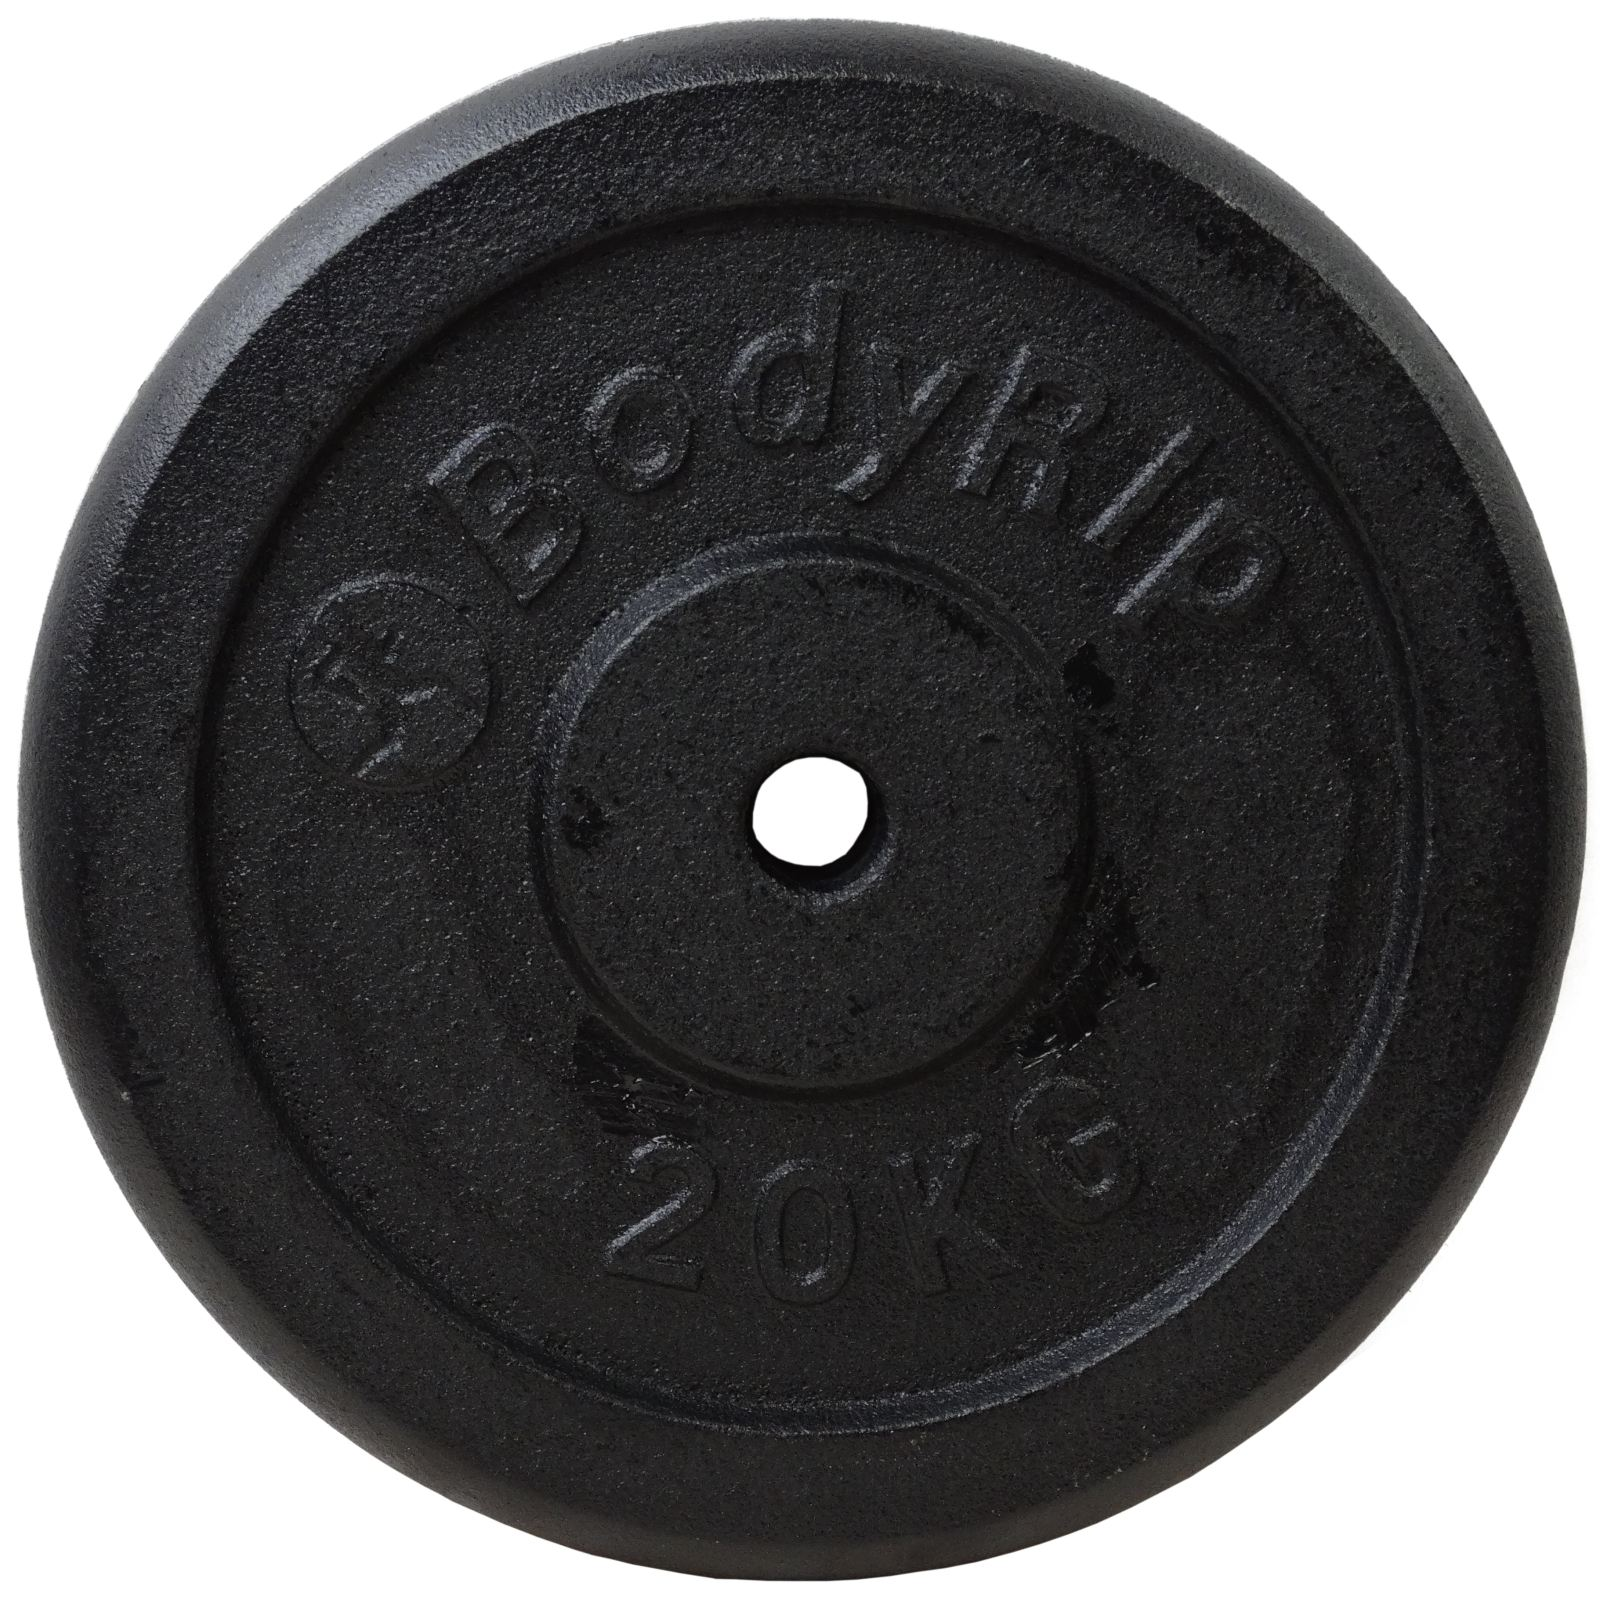 """Primal Strength Rebel Commercial Fitness Premium Cast: Standard Weight Plates Discs 1"""" Gym Training Fitness"""